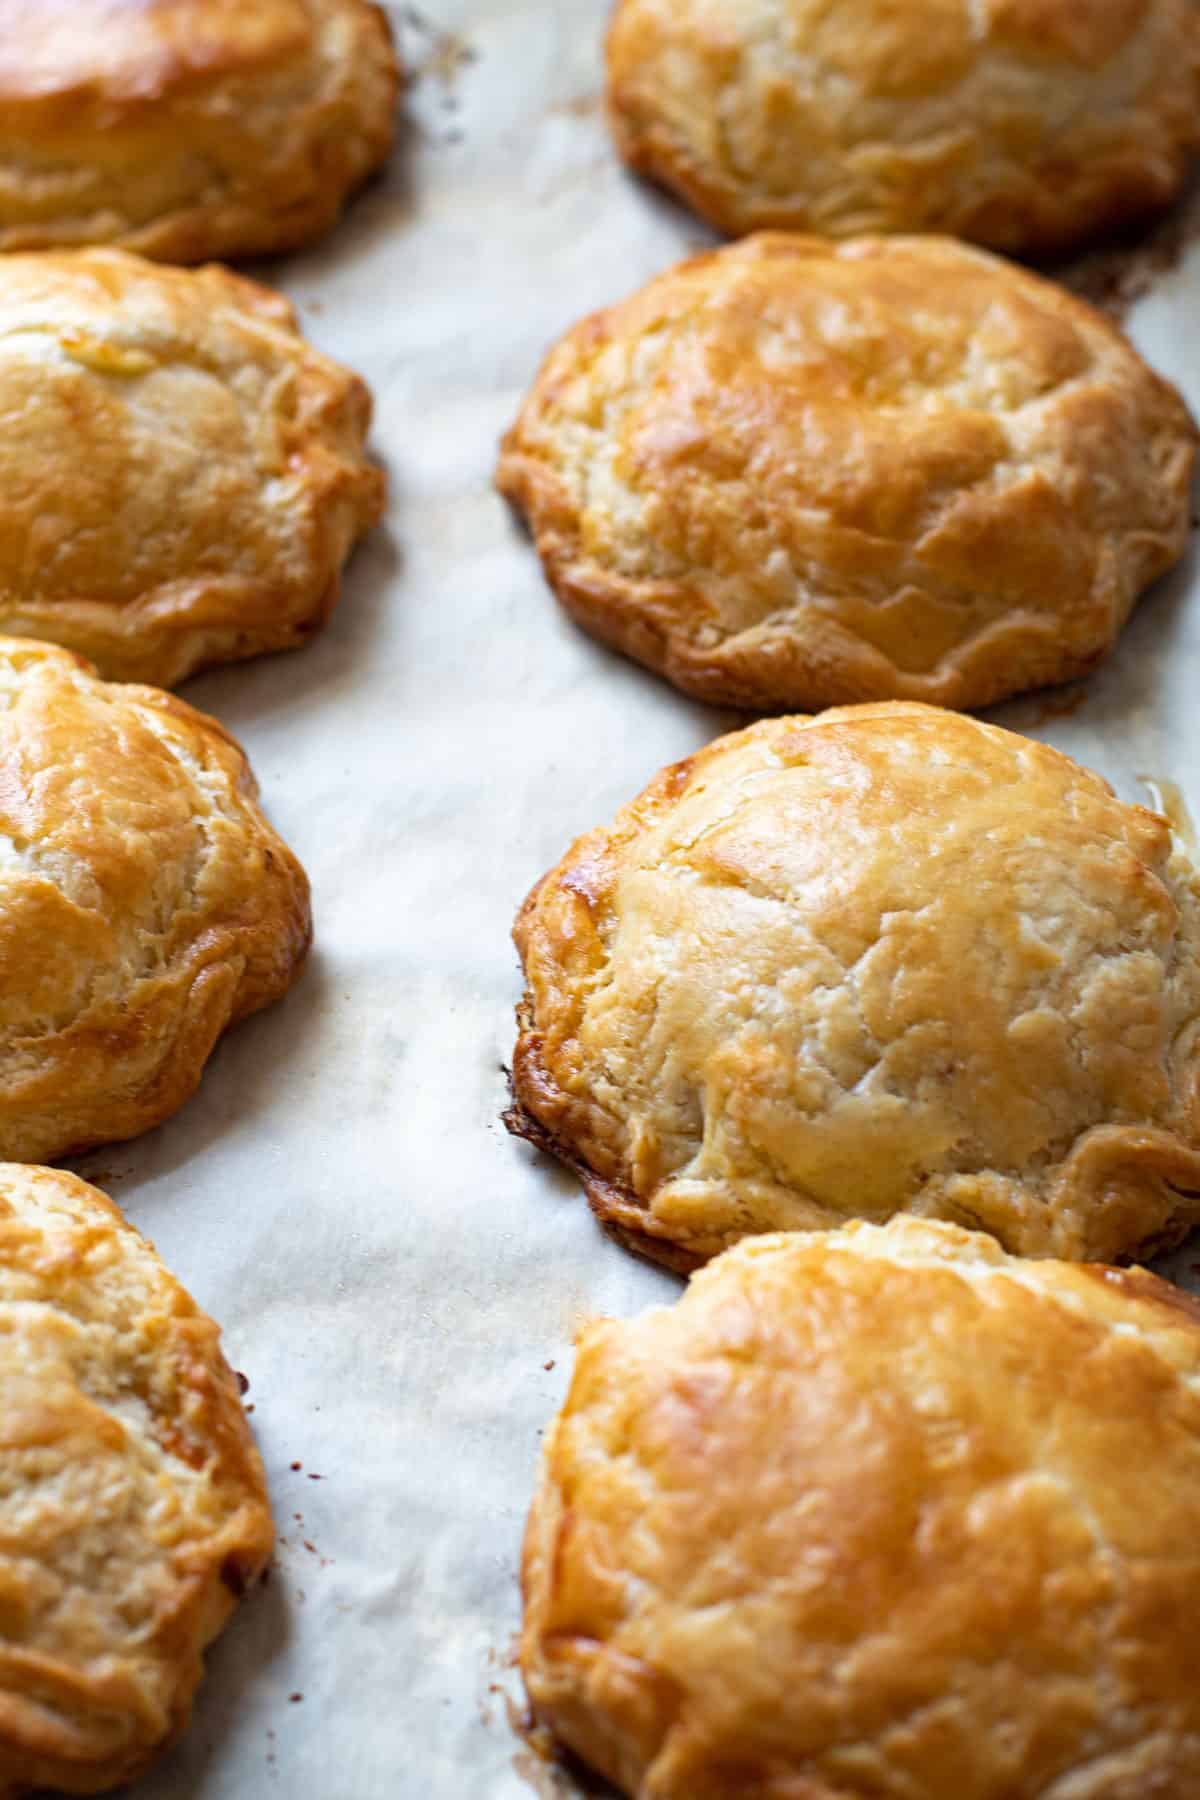 Fully baked hand pies.